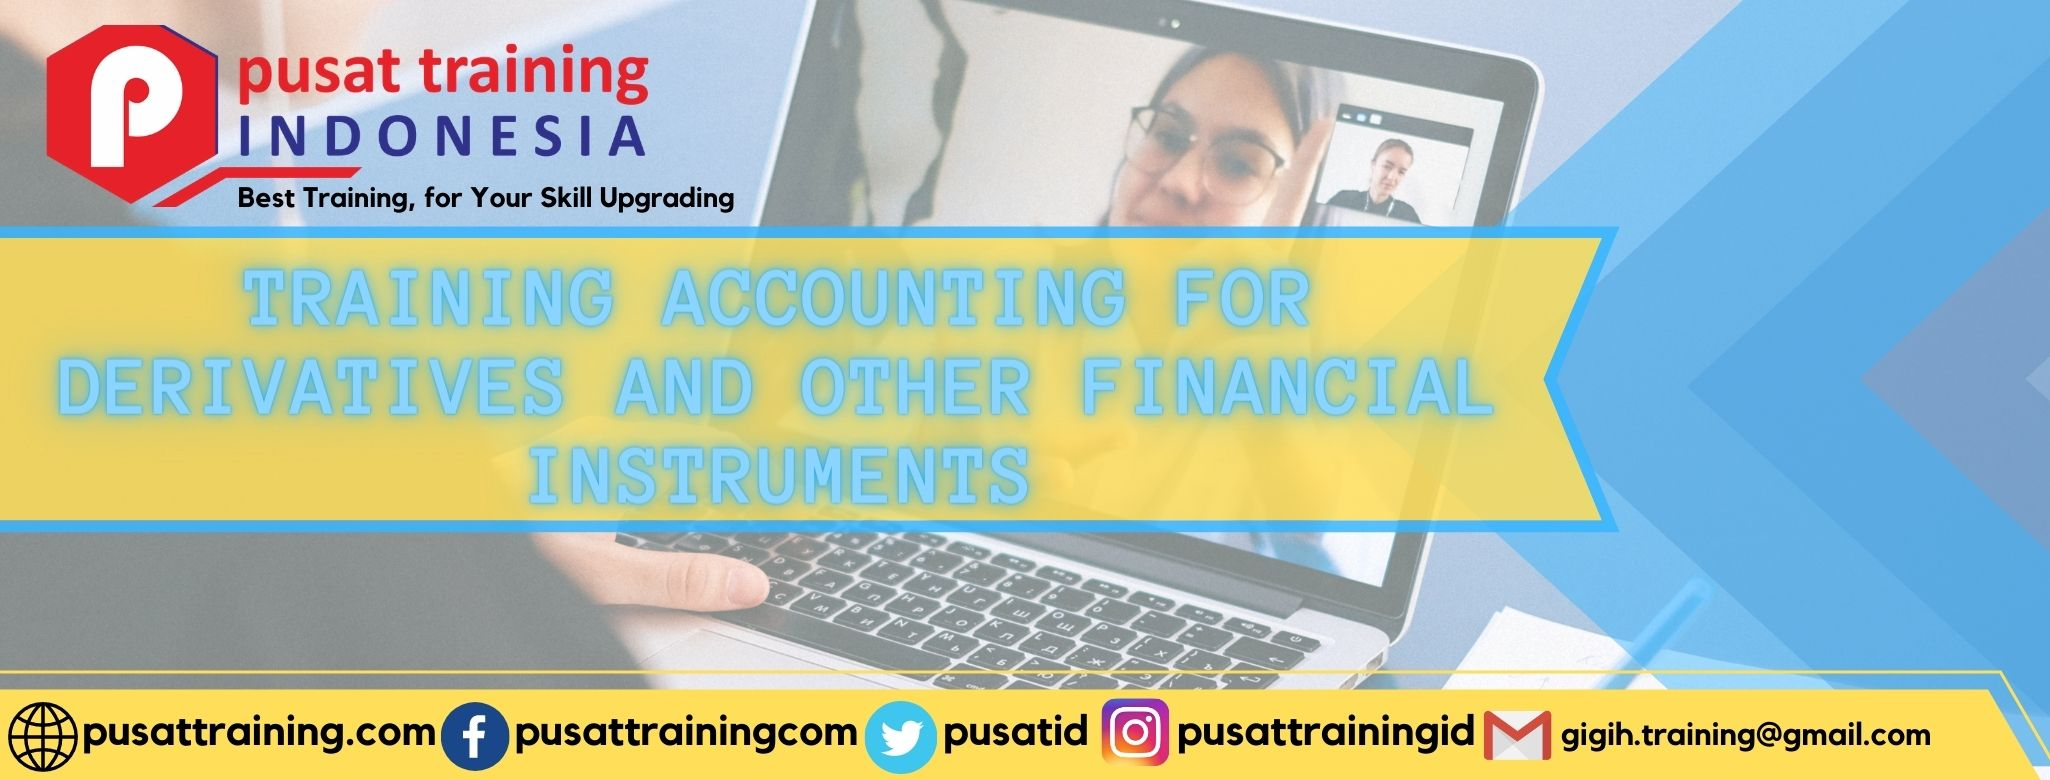 TRAINING ACCOUNTING FOR DERIVATIVES AND OTHER FINANCIAL INSTRUMENTS